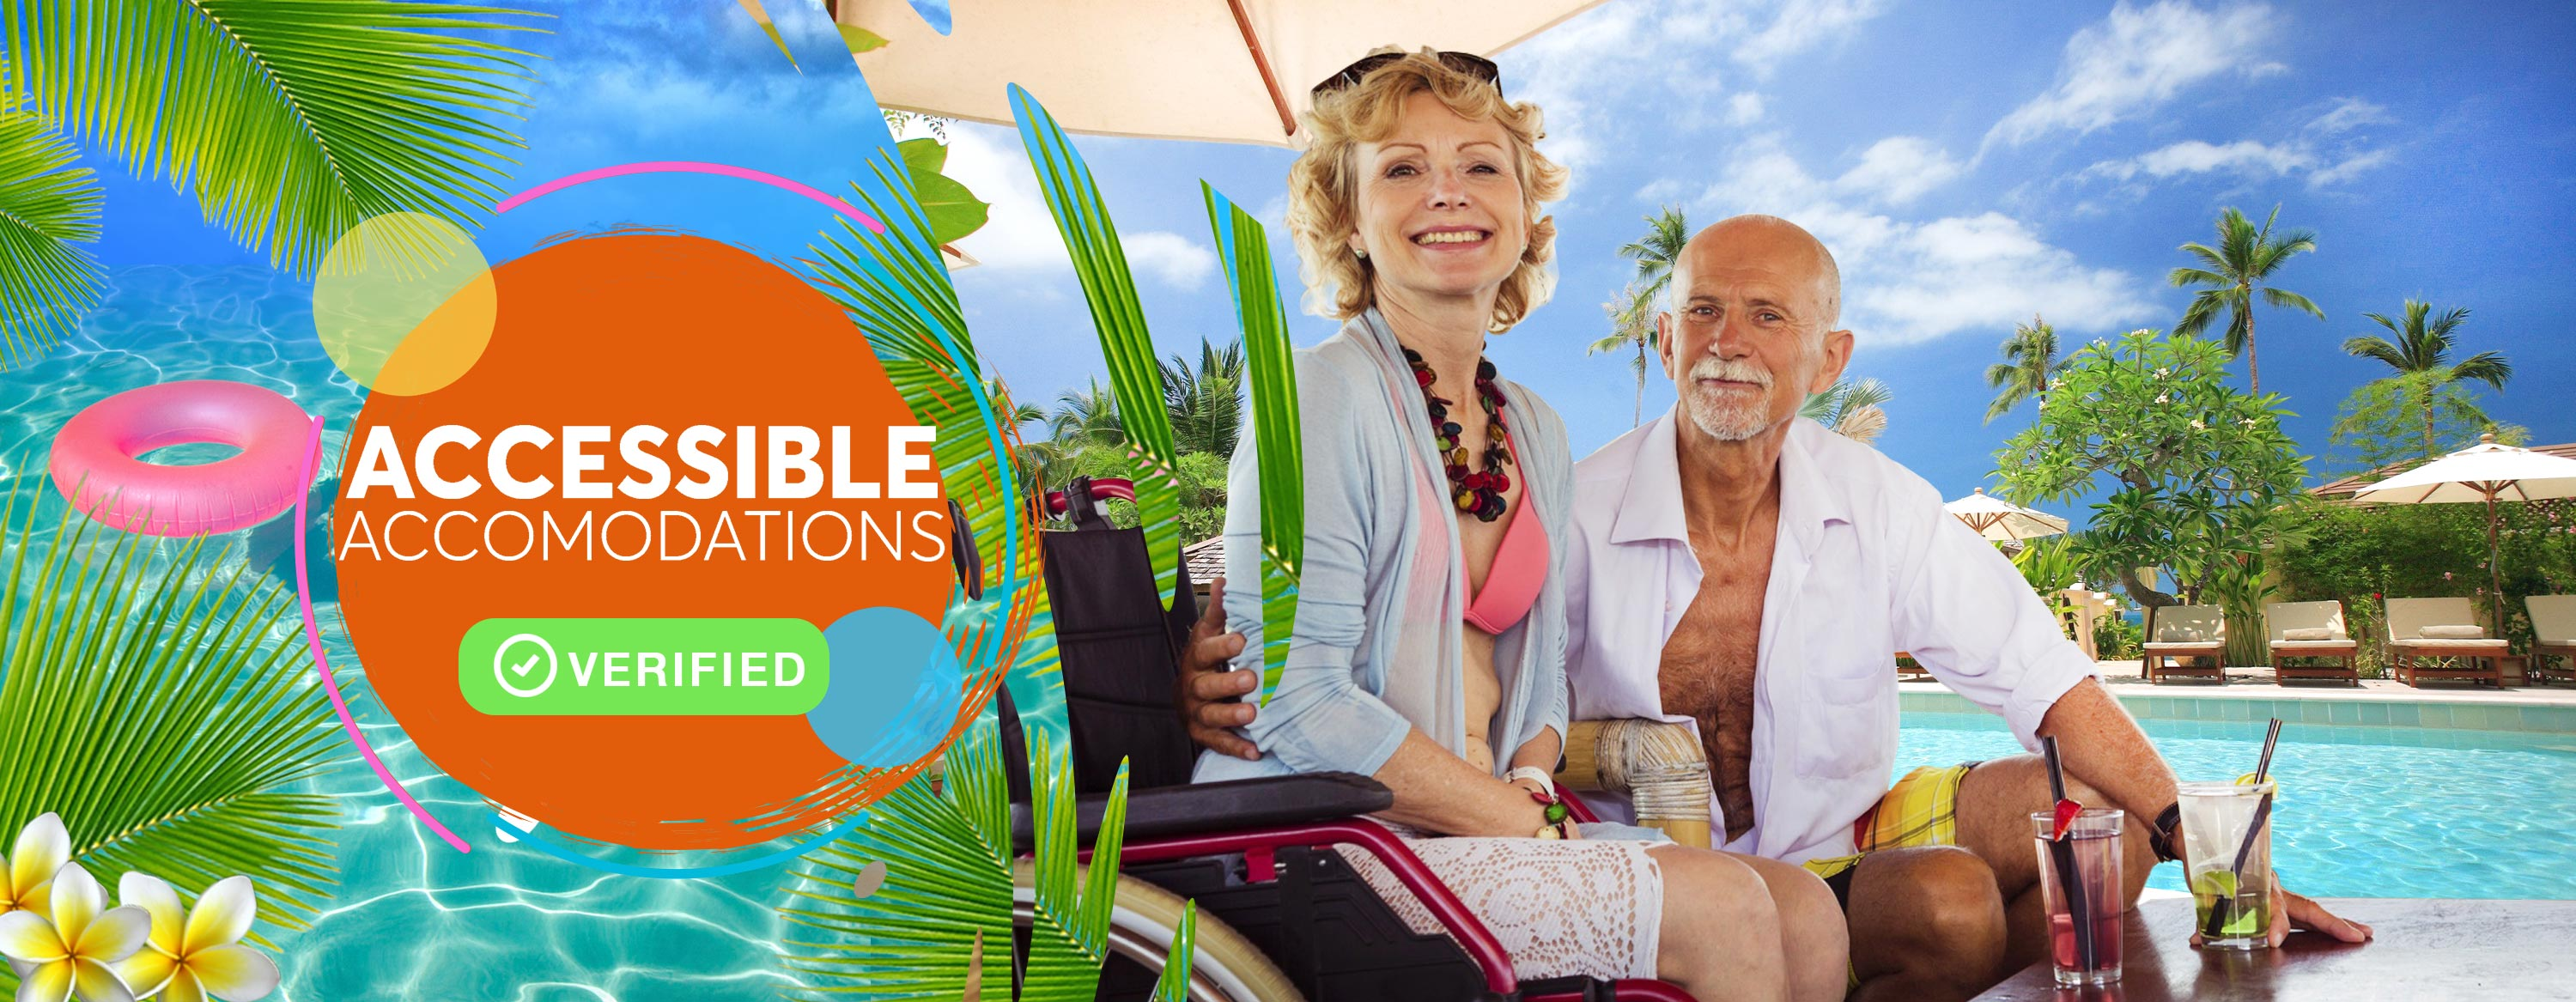 Accessible Accomodations Cozumel